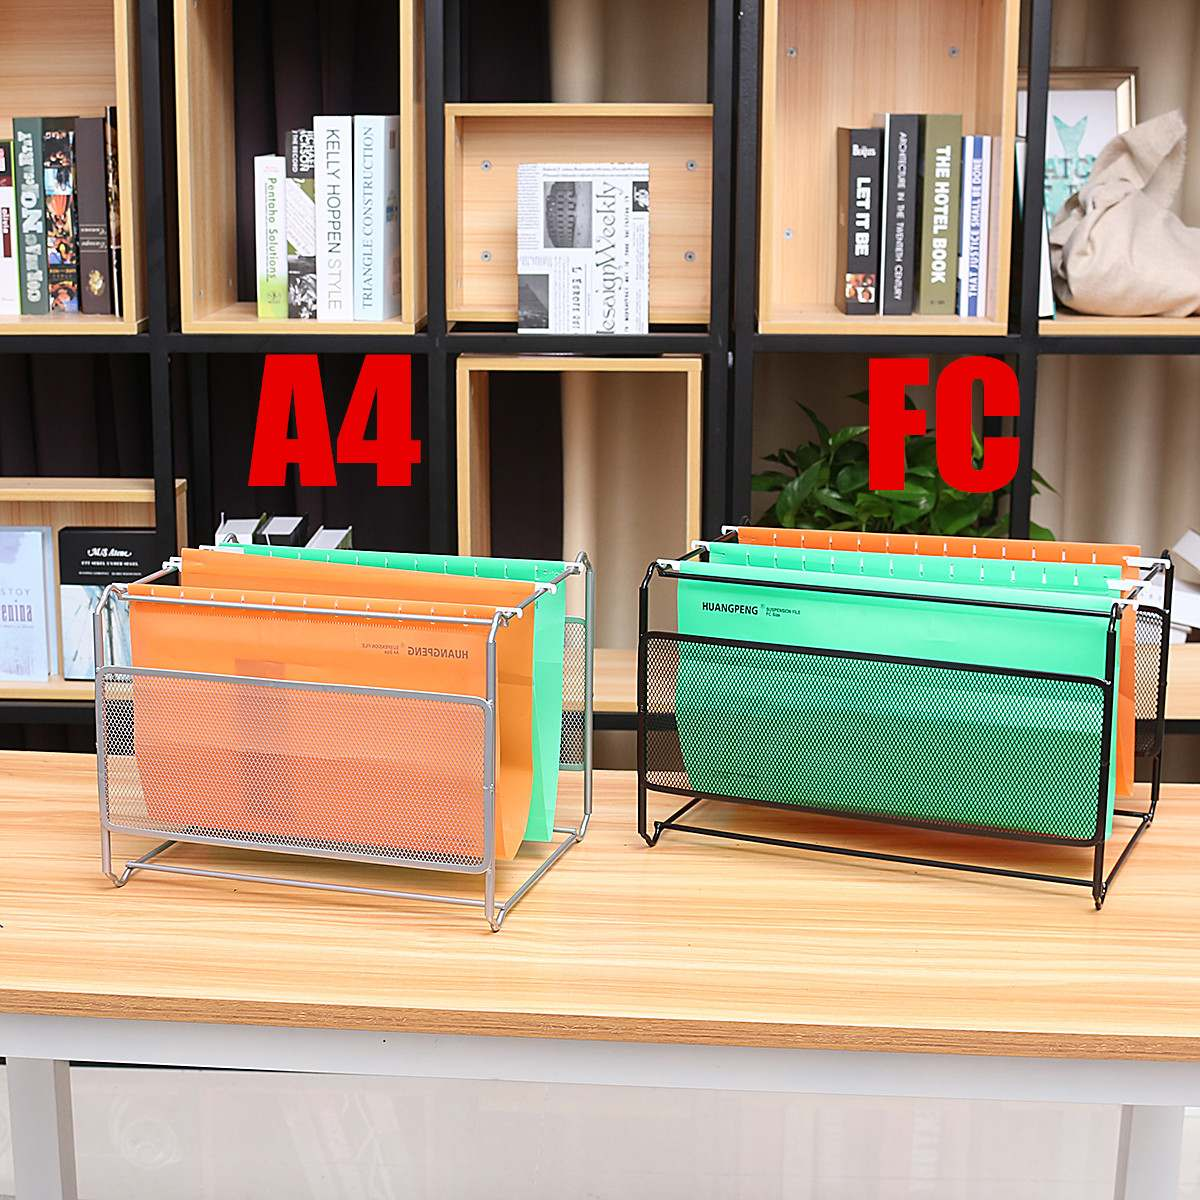 Metal Desk Accessories Mesh Hanging File Folder Frame Documents Holder Organizador A4FC Size For Company Office Supplies